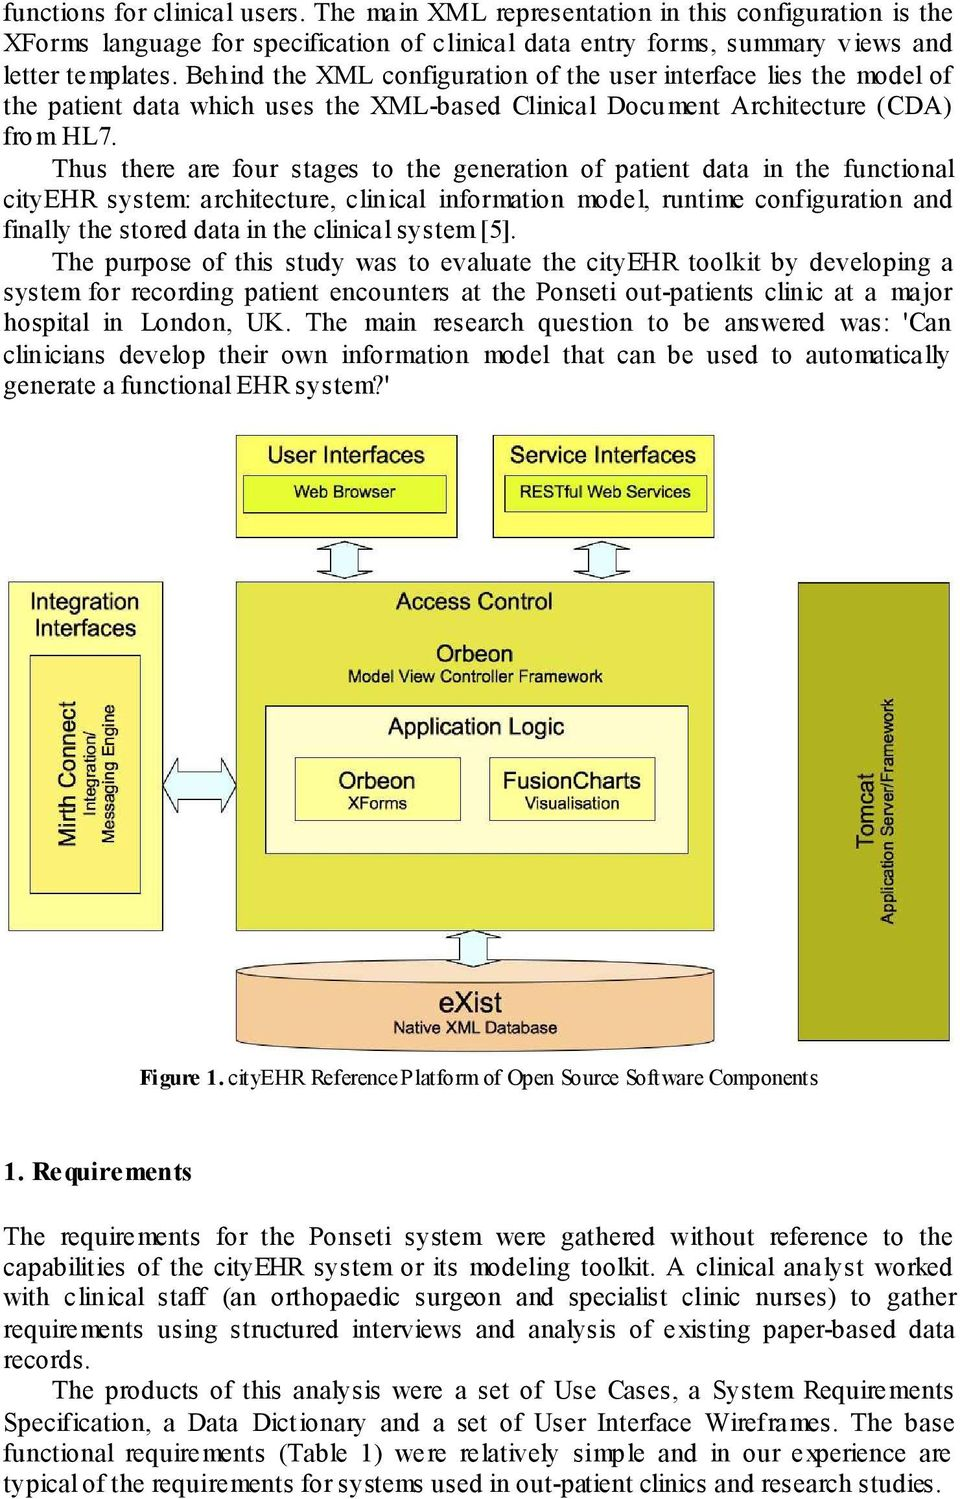 Thus there are four stages to the generation of patient data in the functional cityehr system: architecture, clinical information model, runtime configuration and finally the stored data in the